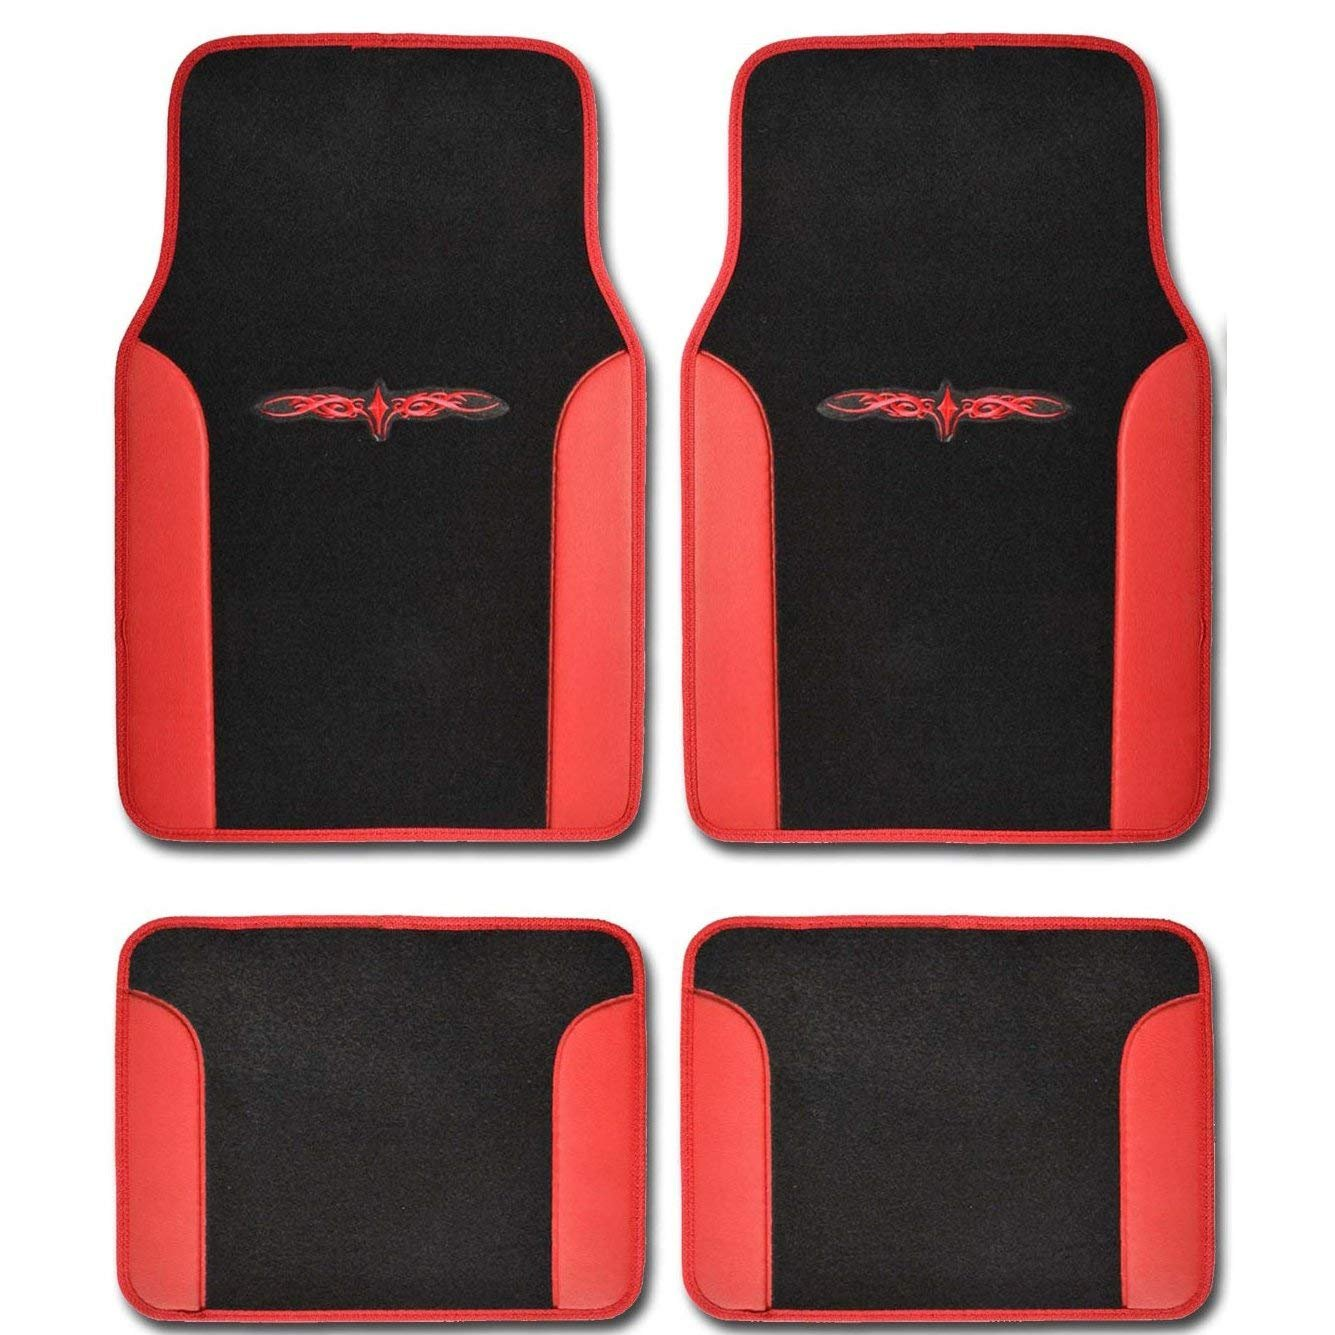 A Set of 4 Universal Fit Plush Carpet with Vinyl Trim Floor Mats For Cars/Trucks (Red)